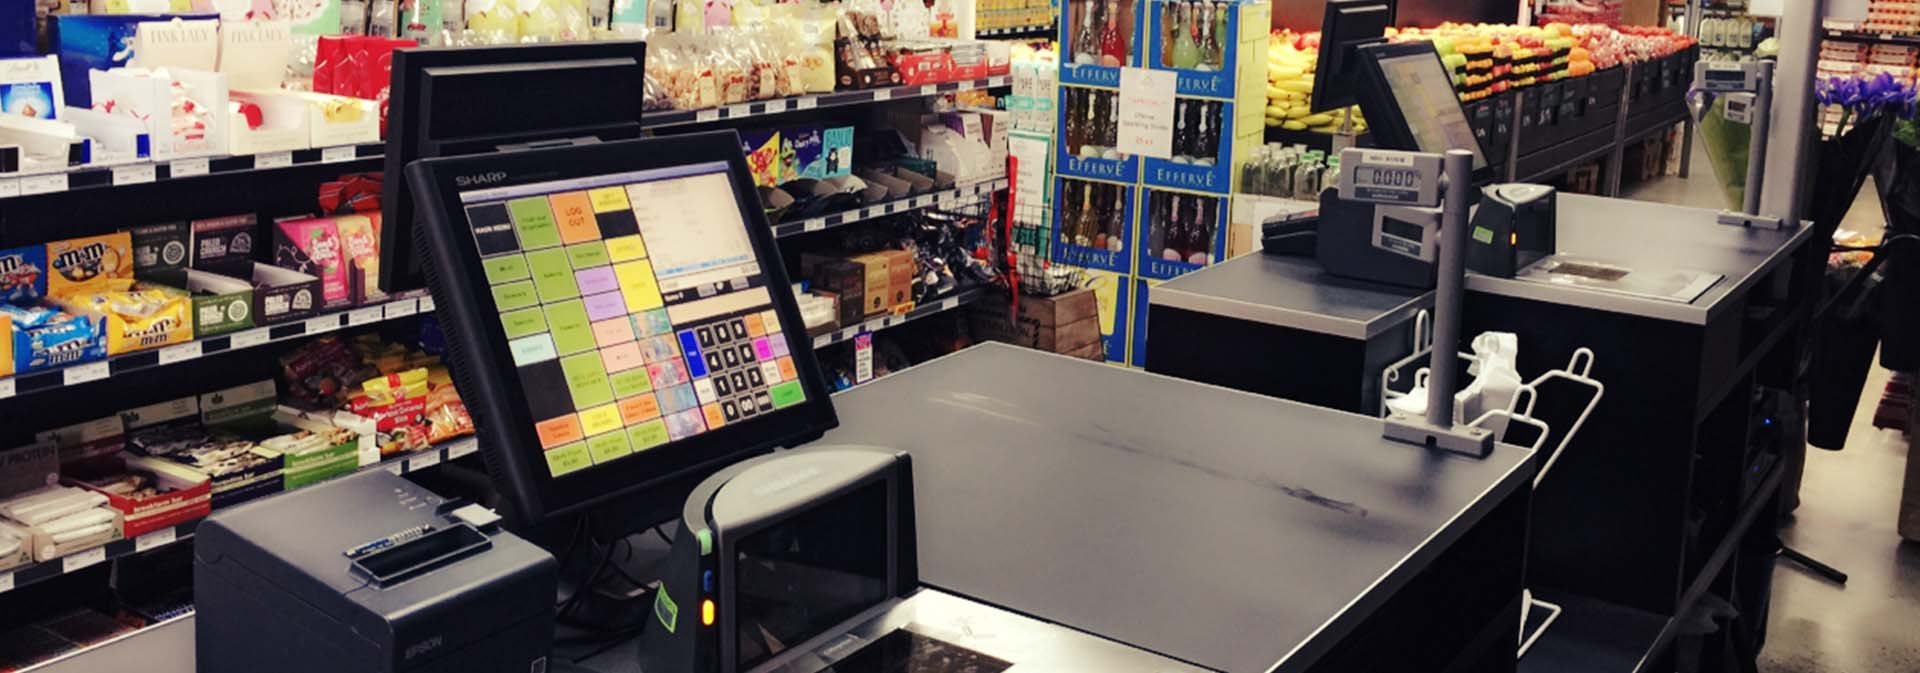 Point Of Sale Systems Pos Systems Cash Registers Cctv